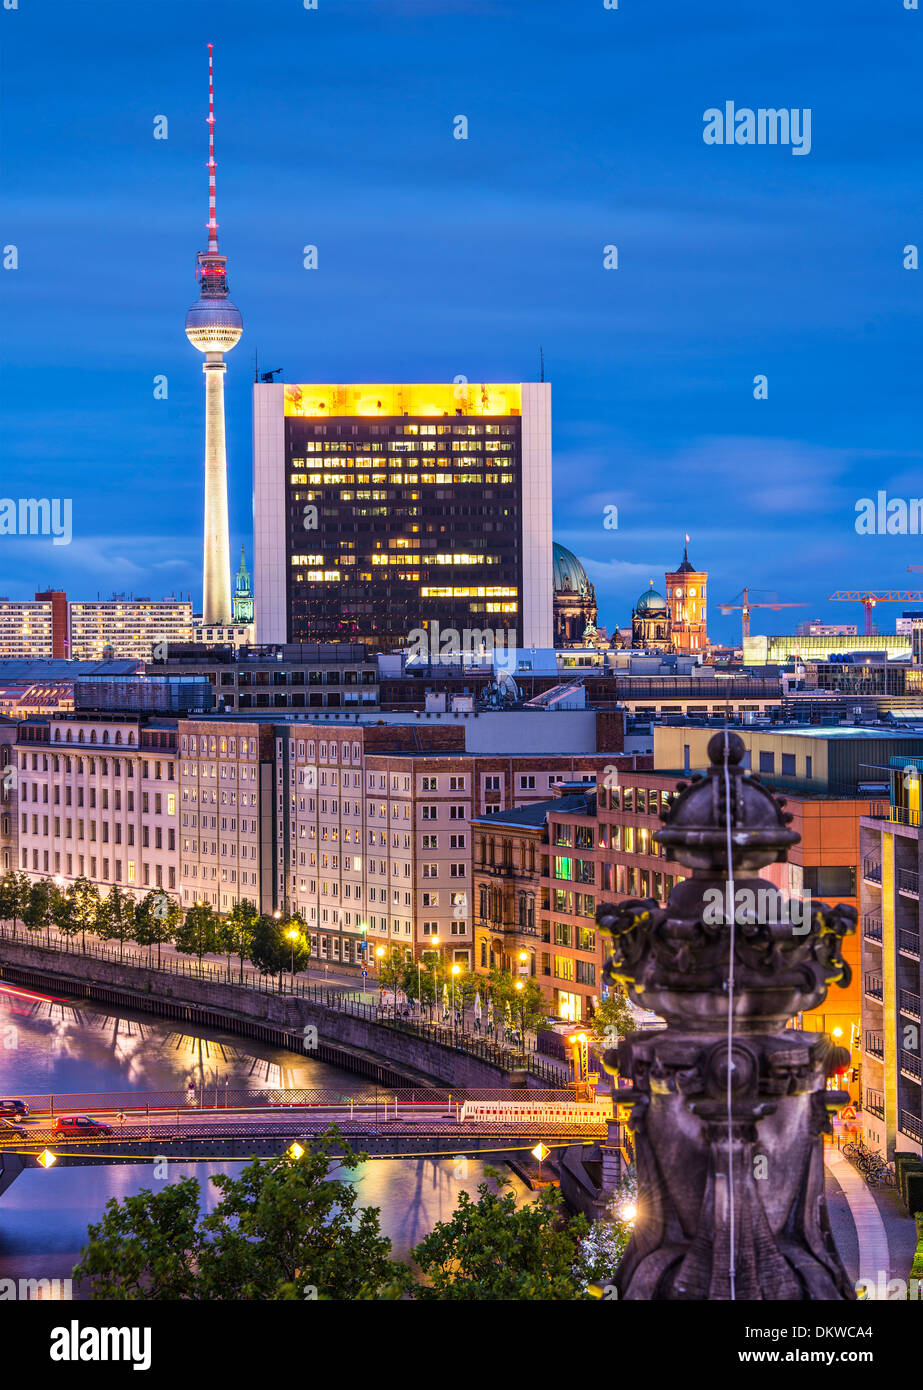 Cityscape of Berlin, Germany. - Stock Image